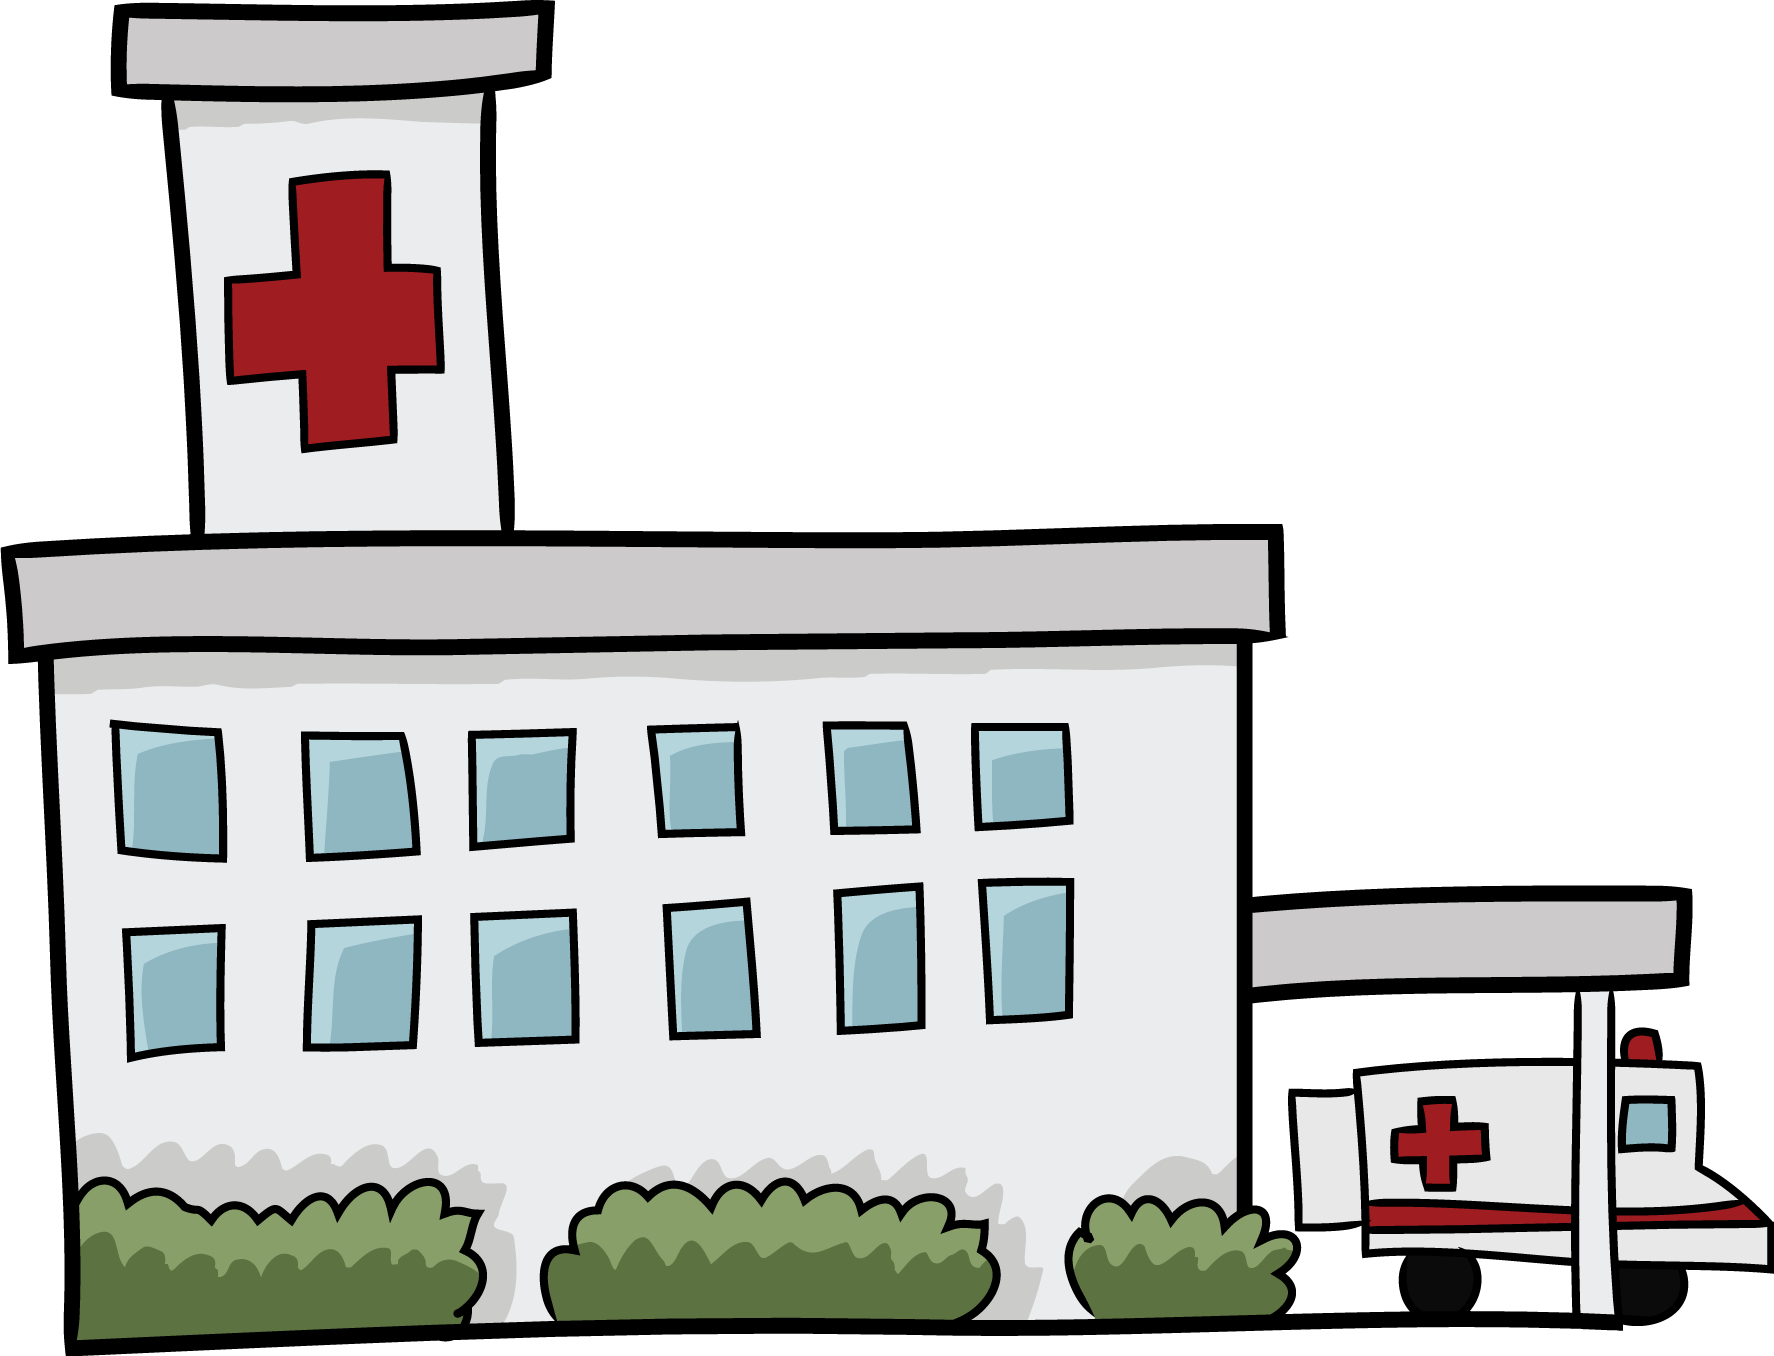 Hospital clipart Images Free Clipart Panda Clipart